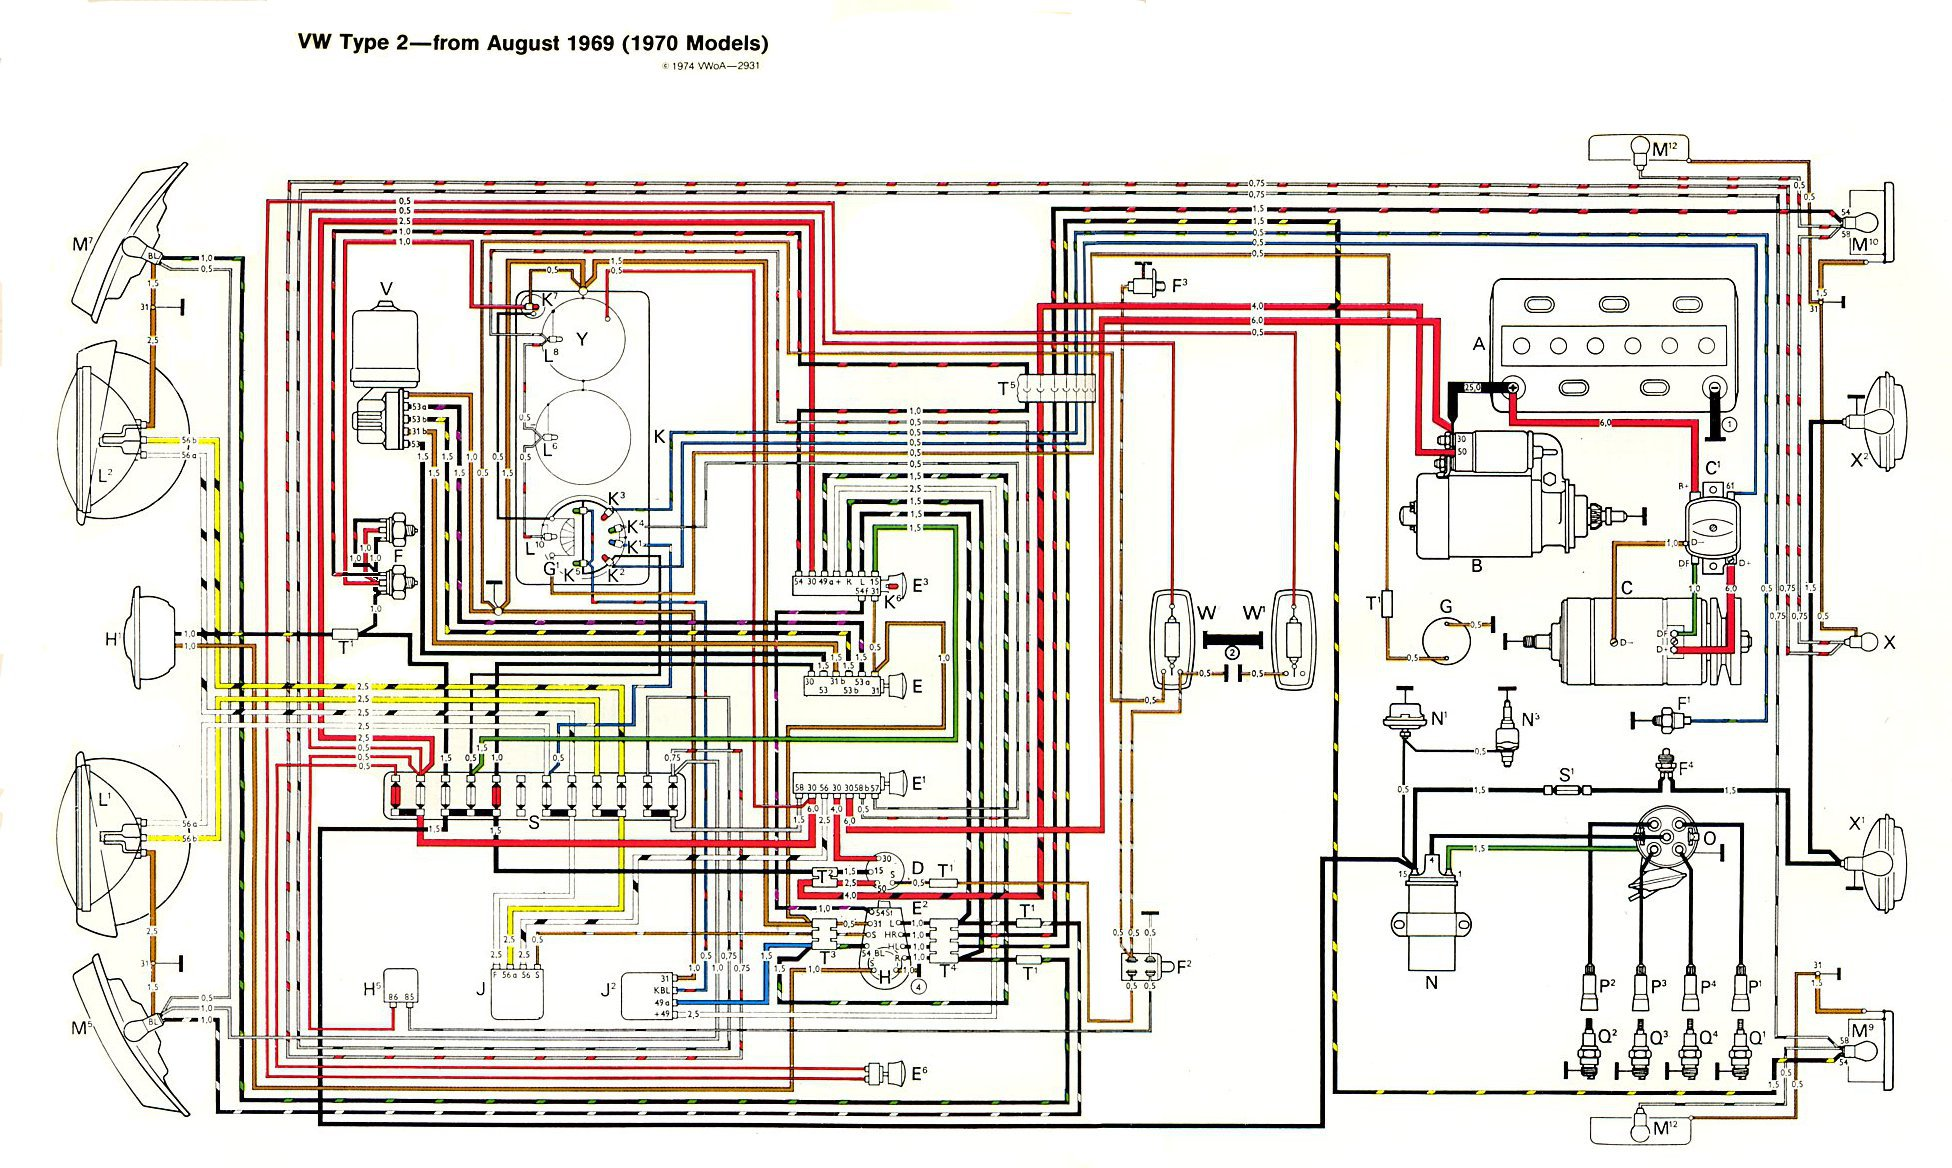 Power Window Switch Wiring Diagram Can I View A Library For Switches 1966 Porsche Circuit Schematic Jeep